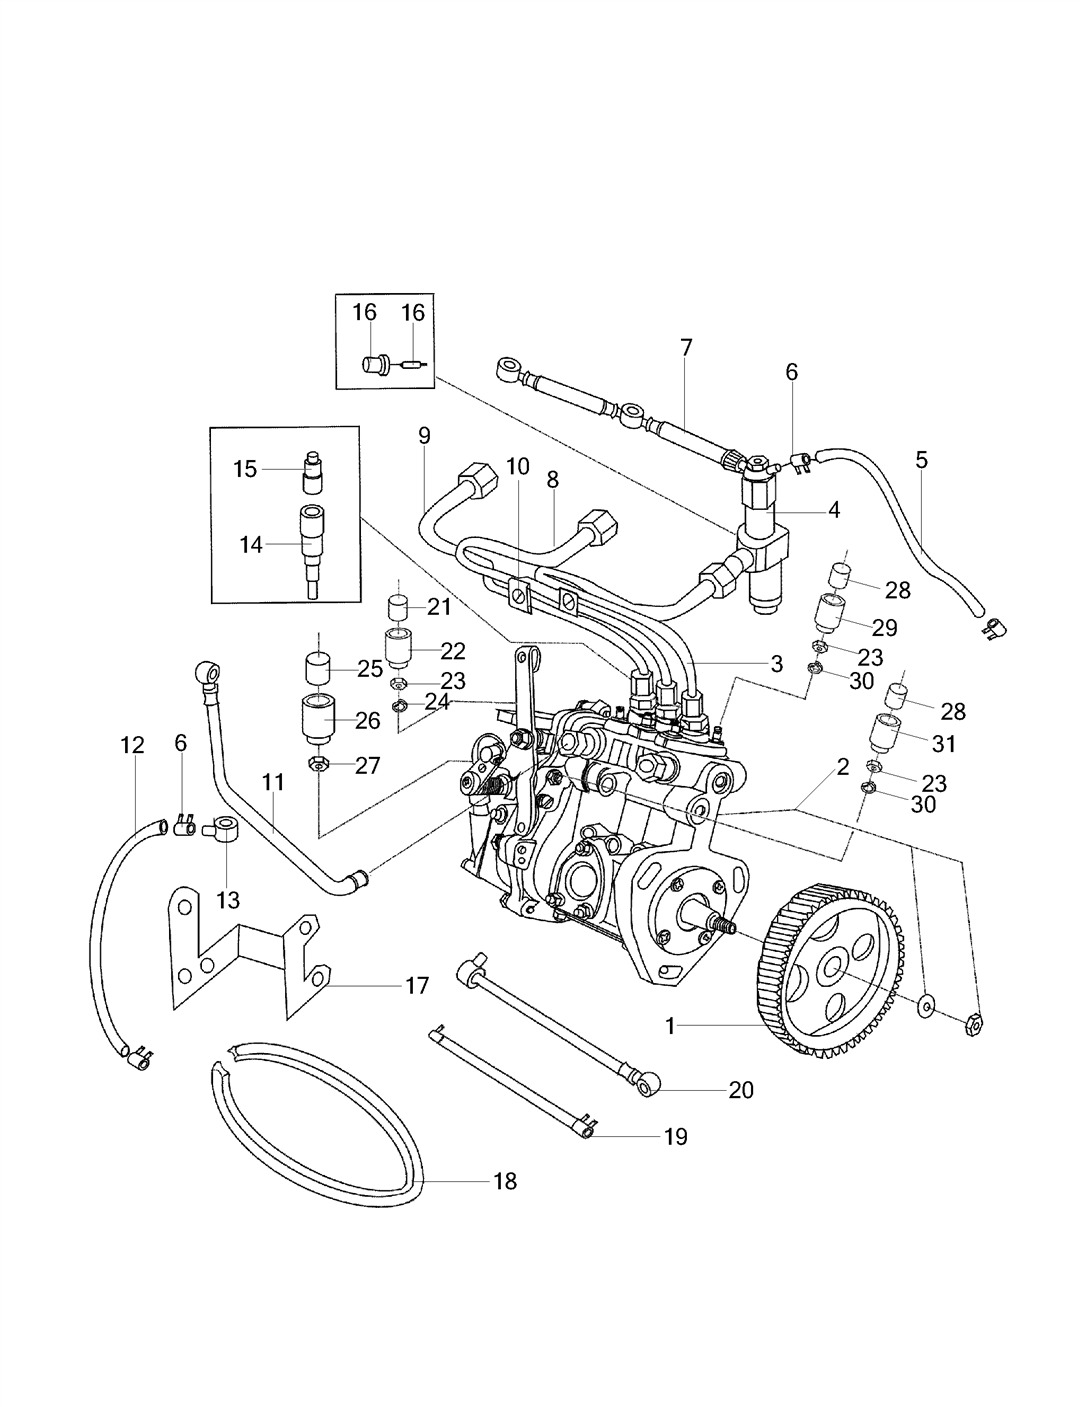 FUEL SYSTEM PARTS FOR 2525/ES-25 MAHINDRA TRACTOR